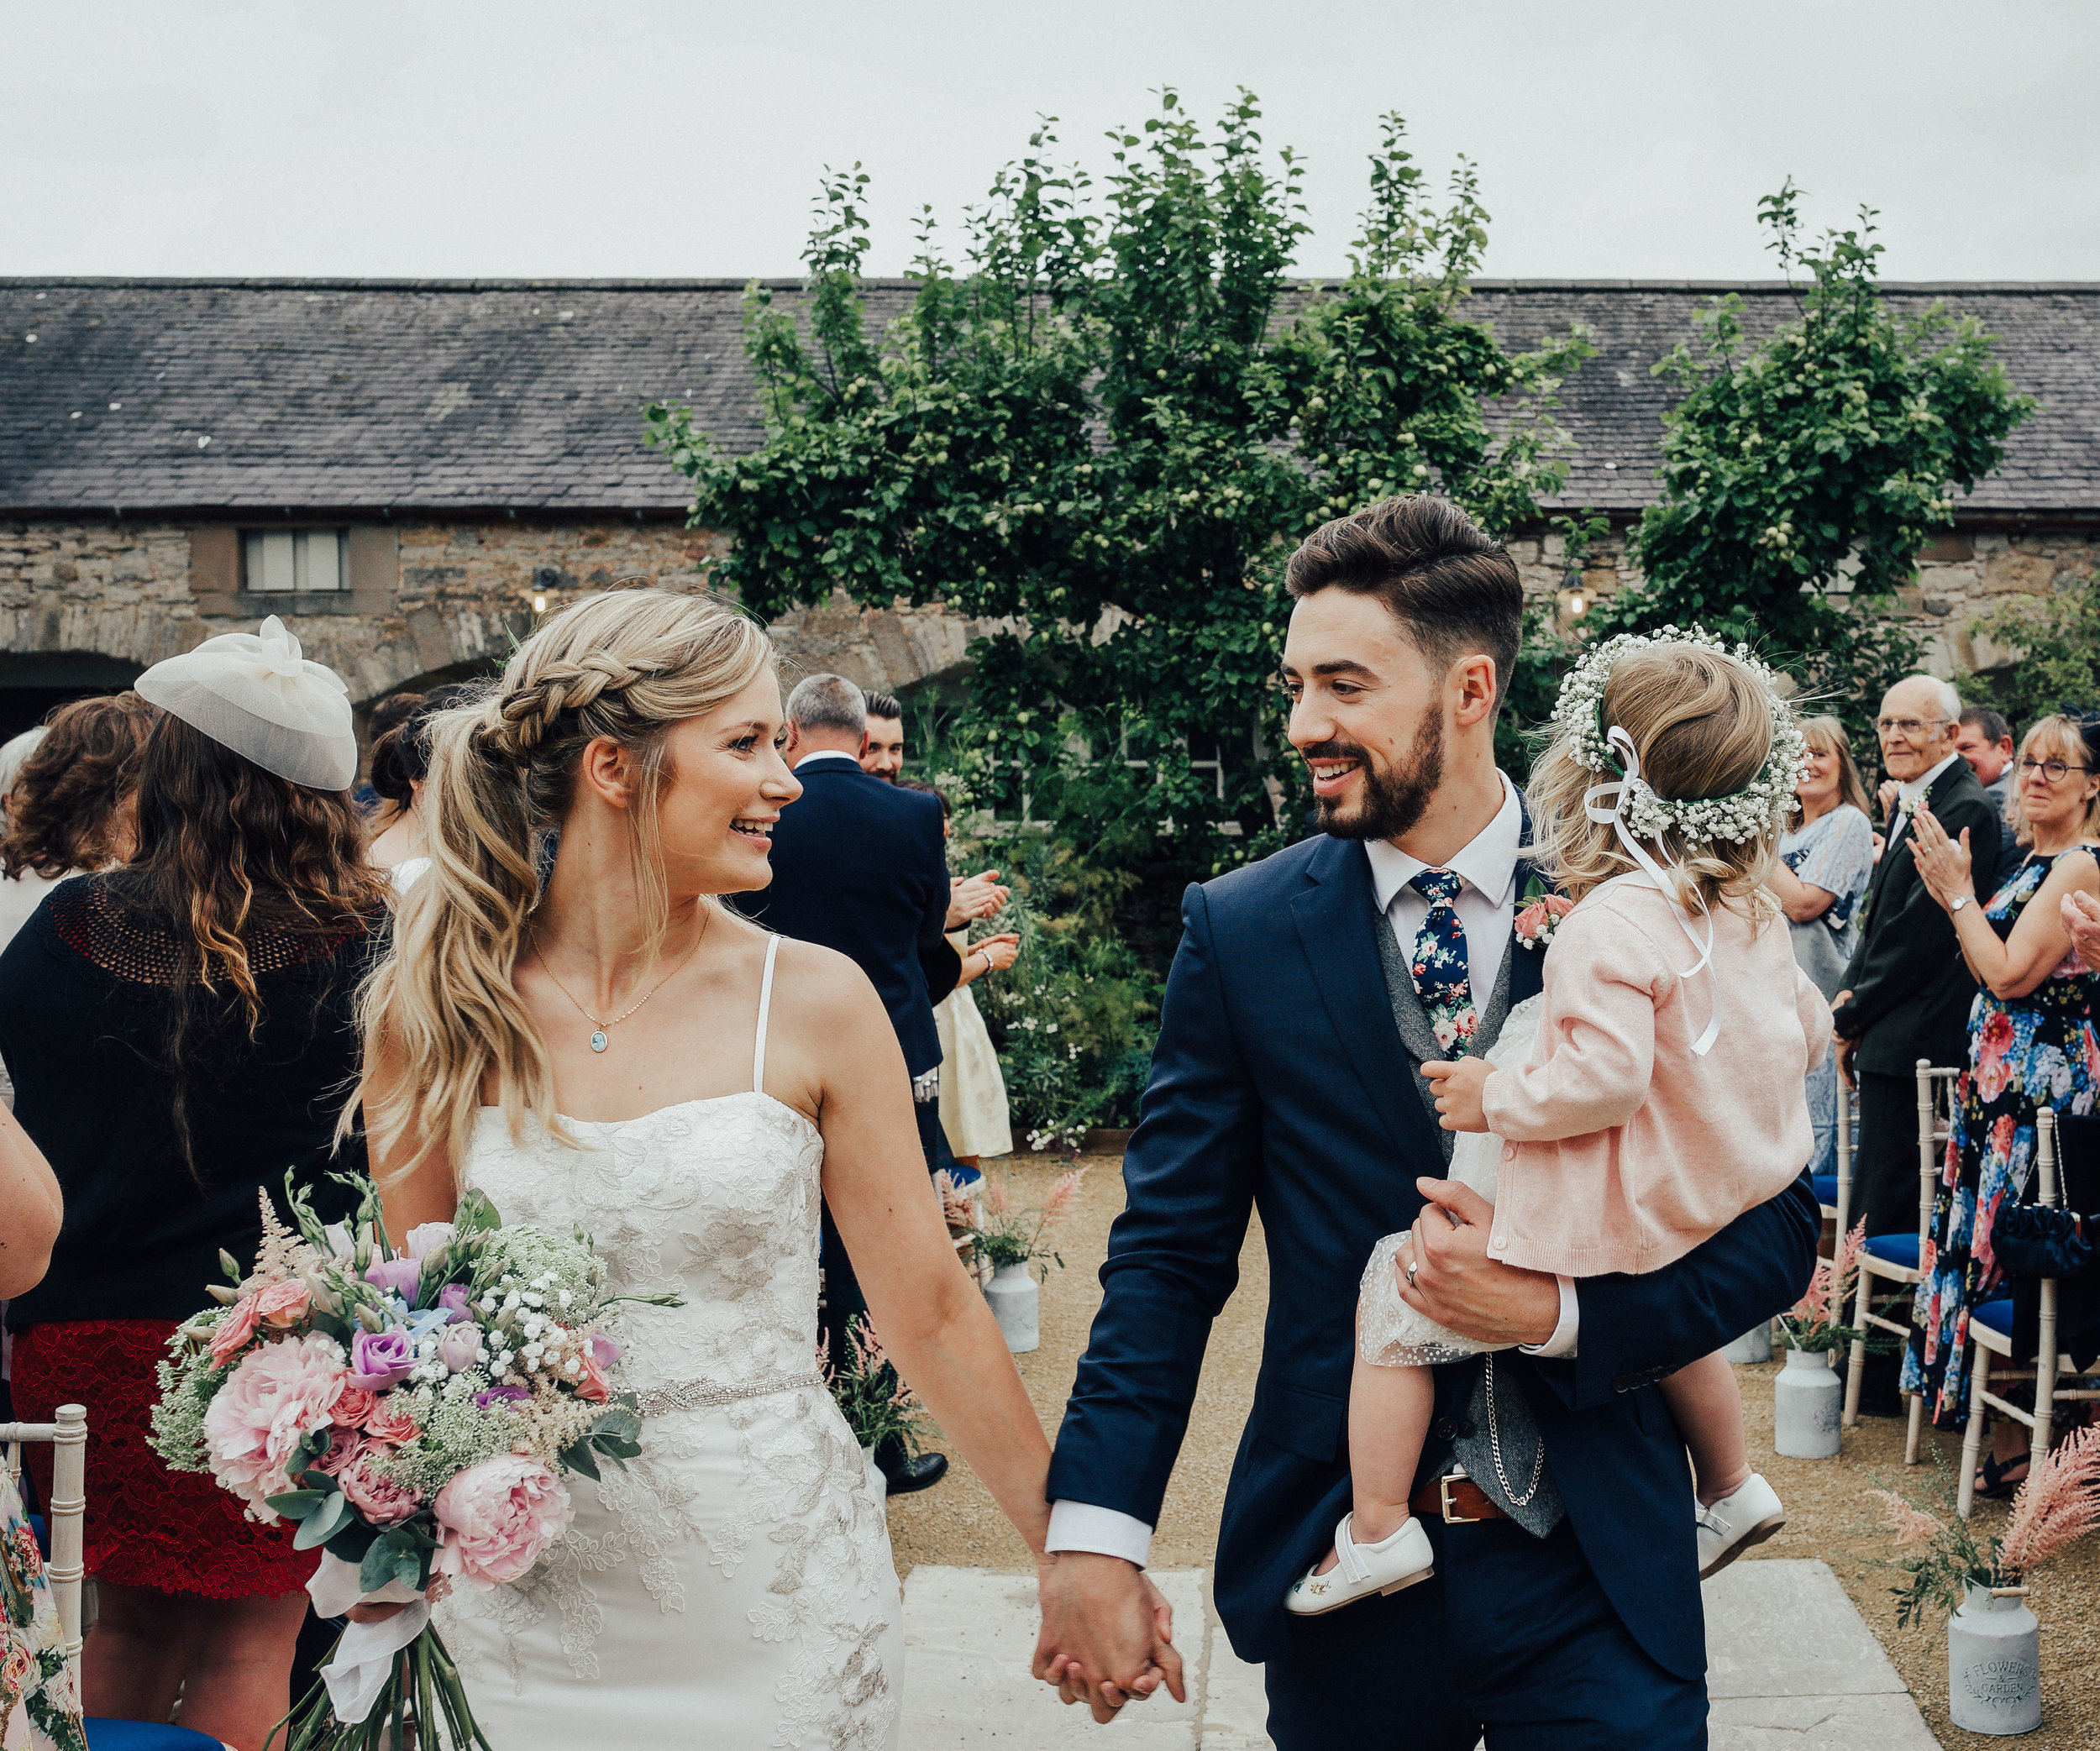 PJ_PHILLIPS_PHOTOGRAPHY_EDINBURGH_WEDDERBURN_BARNS_WEDDING_EDINBURGH_WEDDING_PHOTOGRAPHER_79.jpg